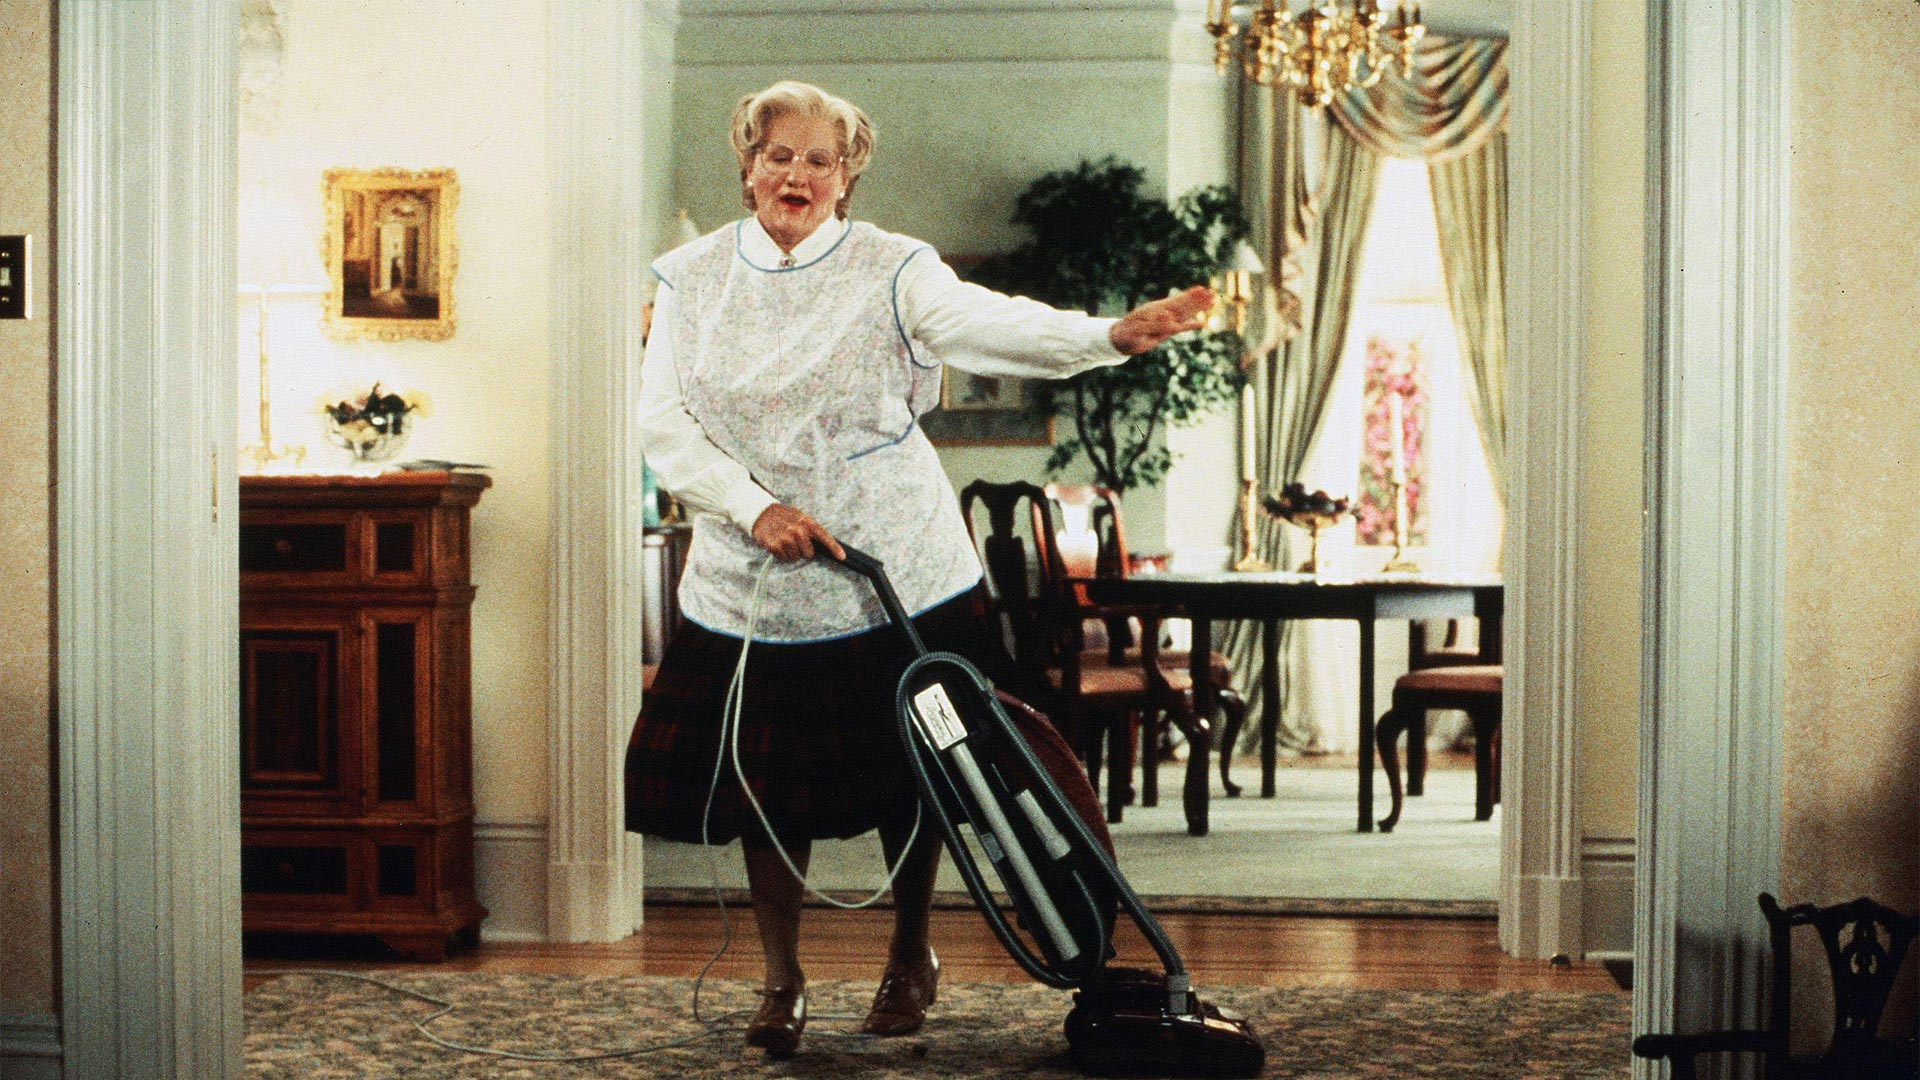 High Resolution Wallpaper | Mrs. Doubtfire 1920x1080 px